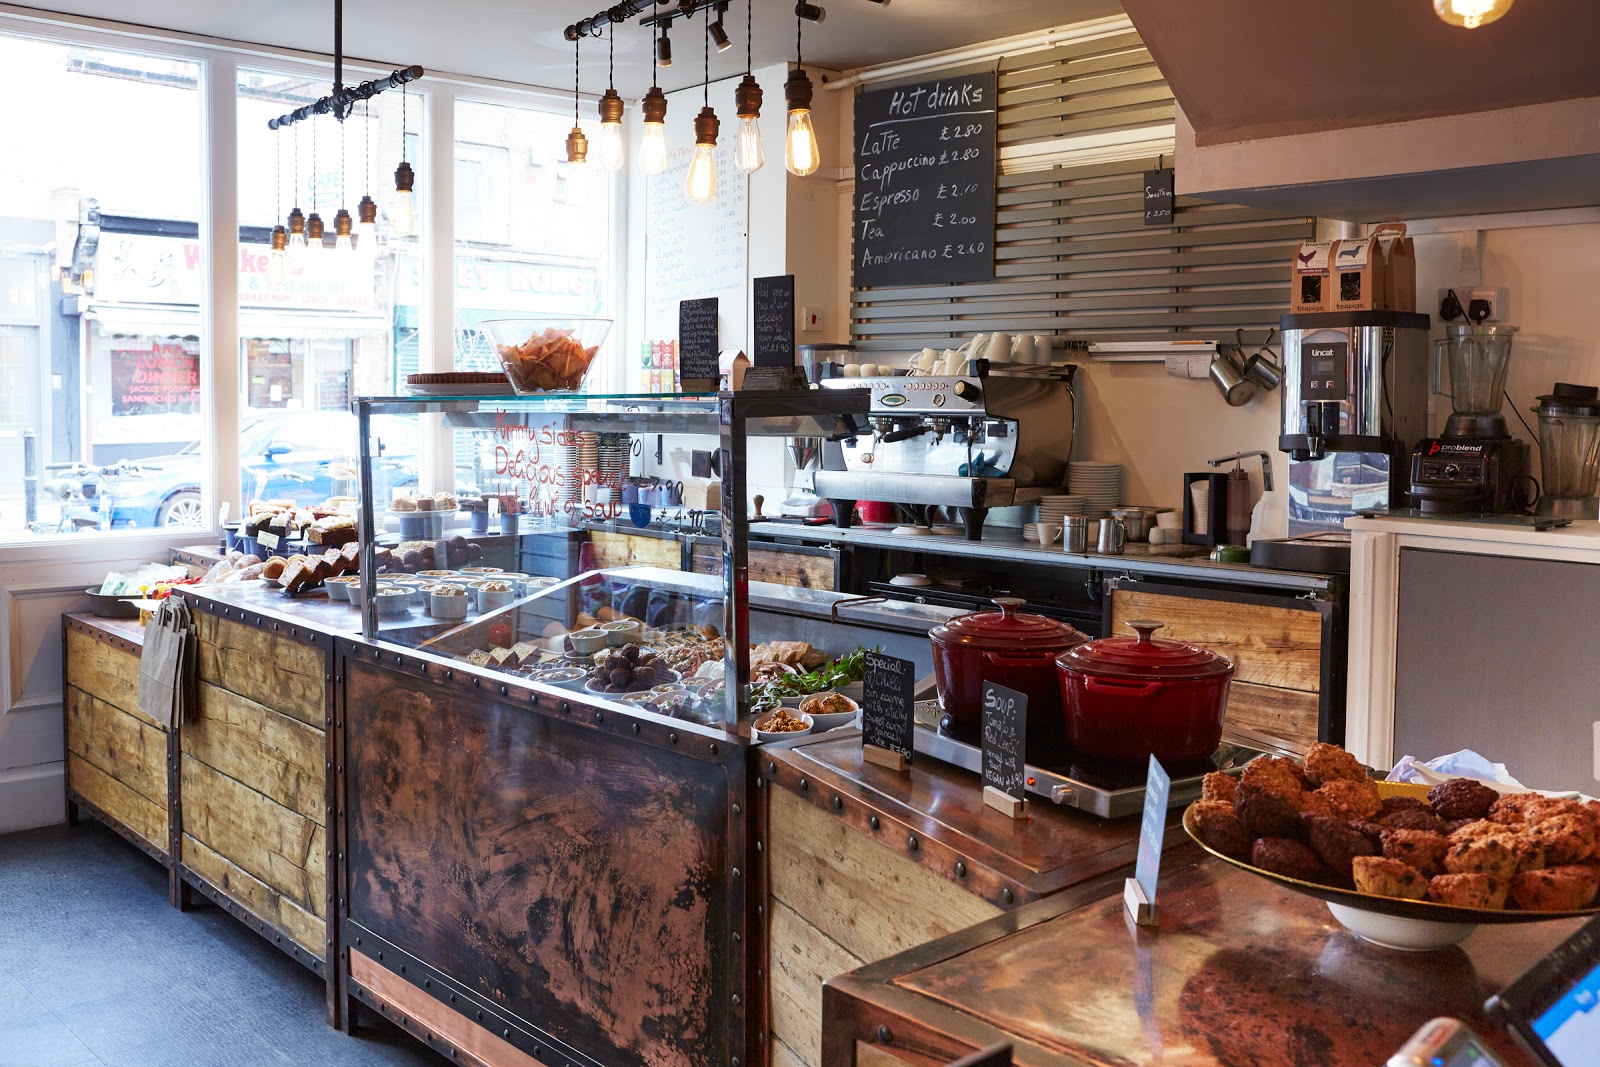 The Larder, Bethnal Green: A Work-Friendly Place in London